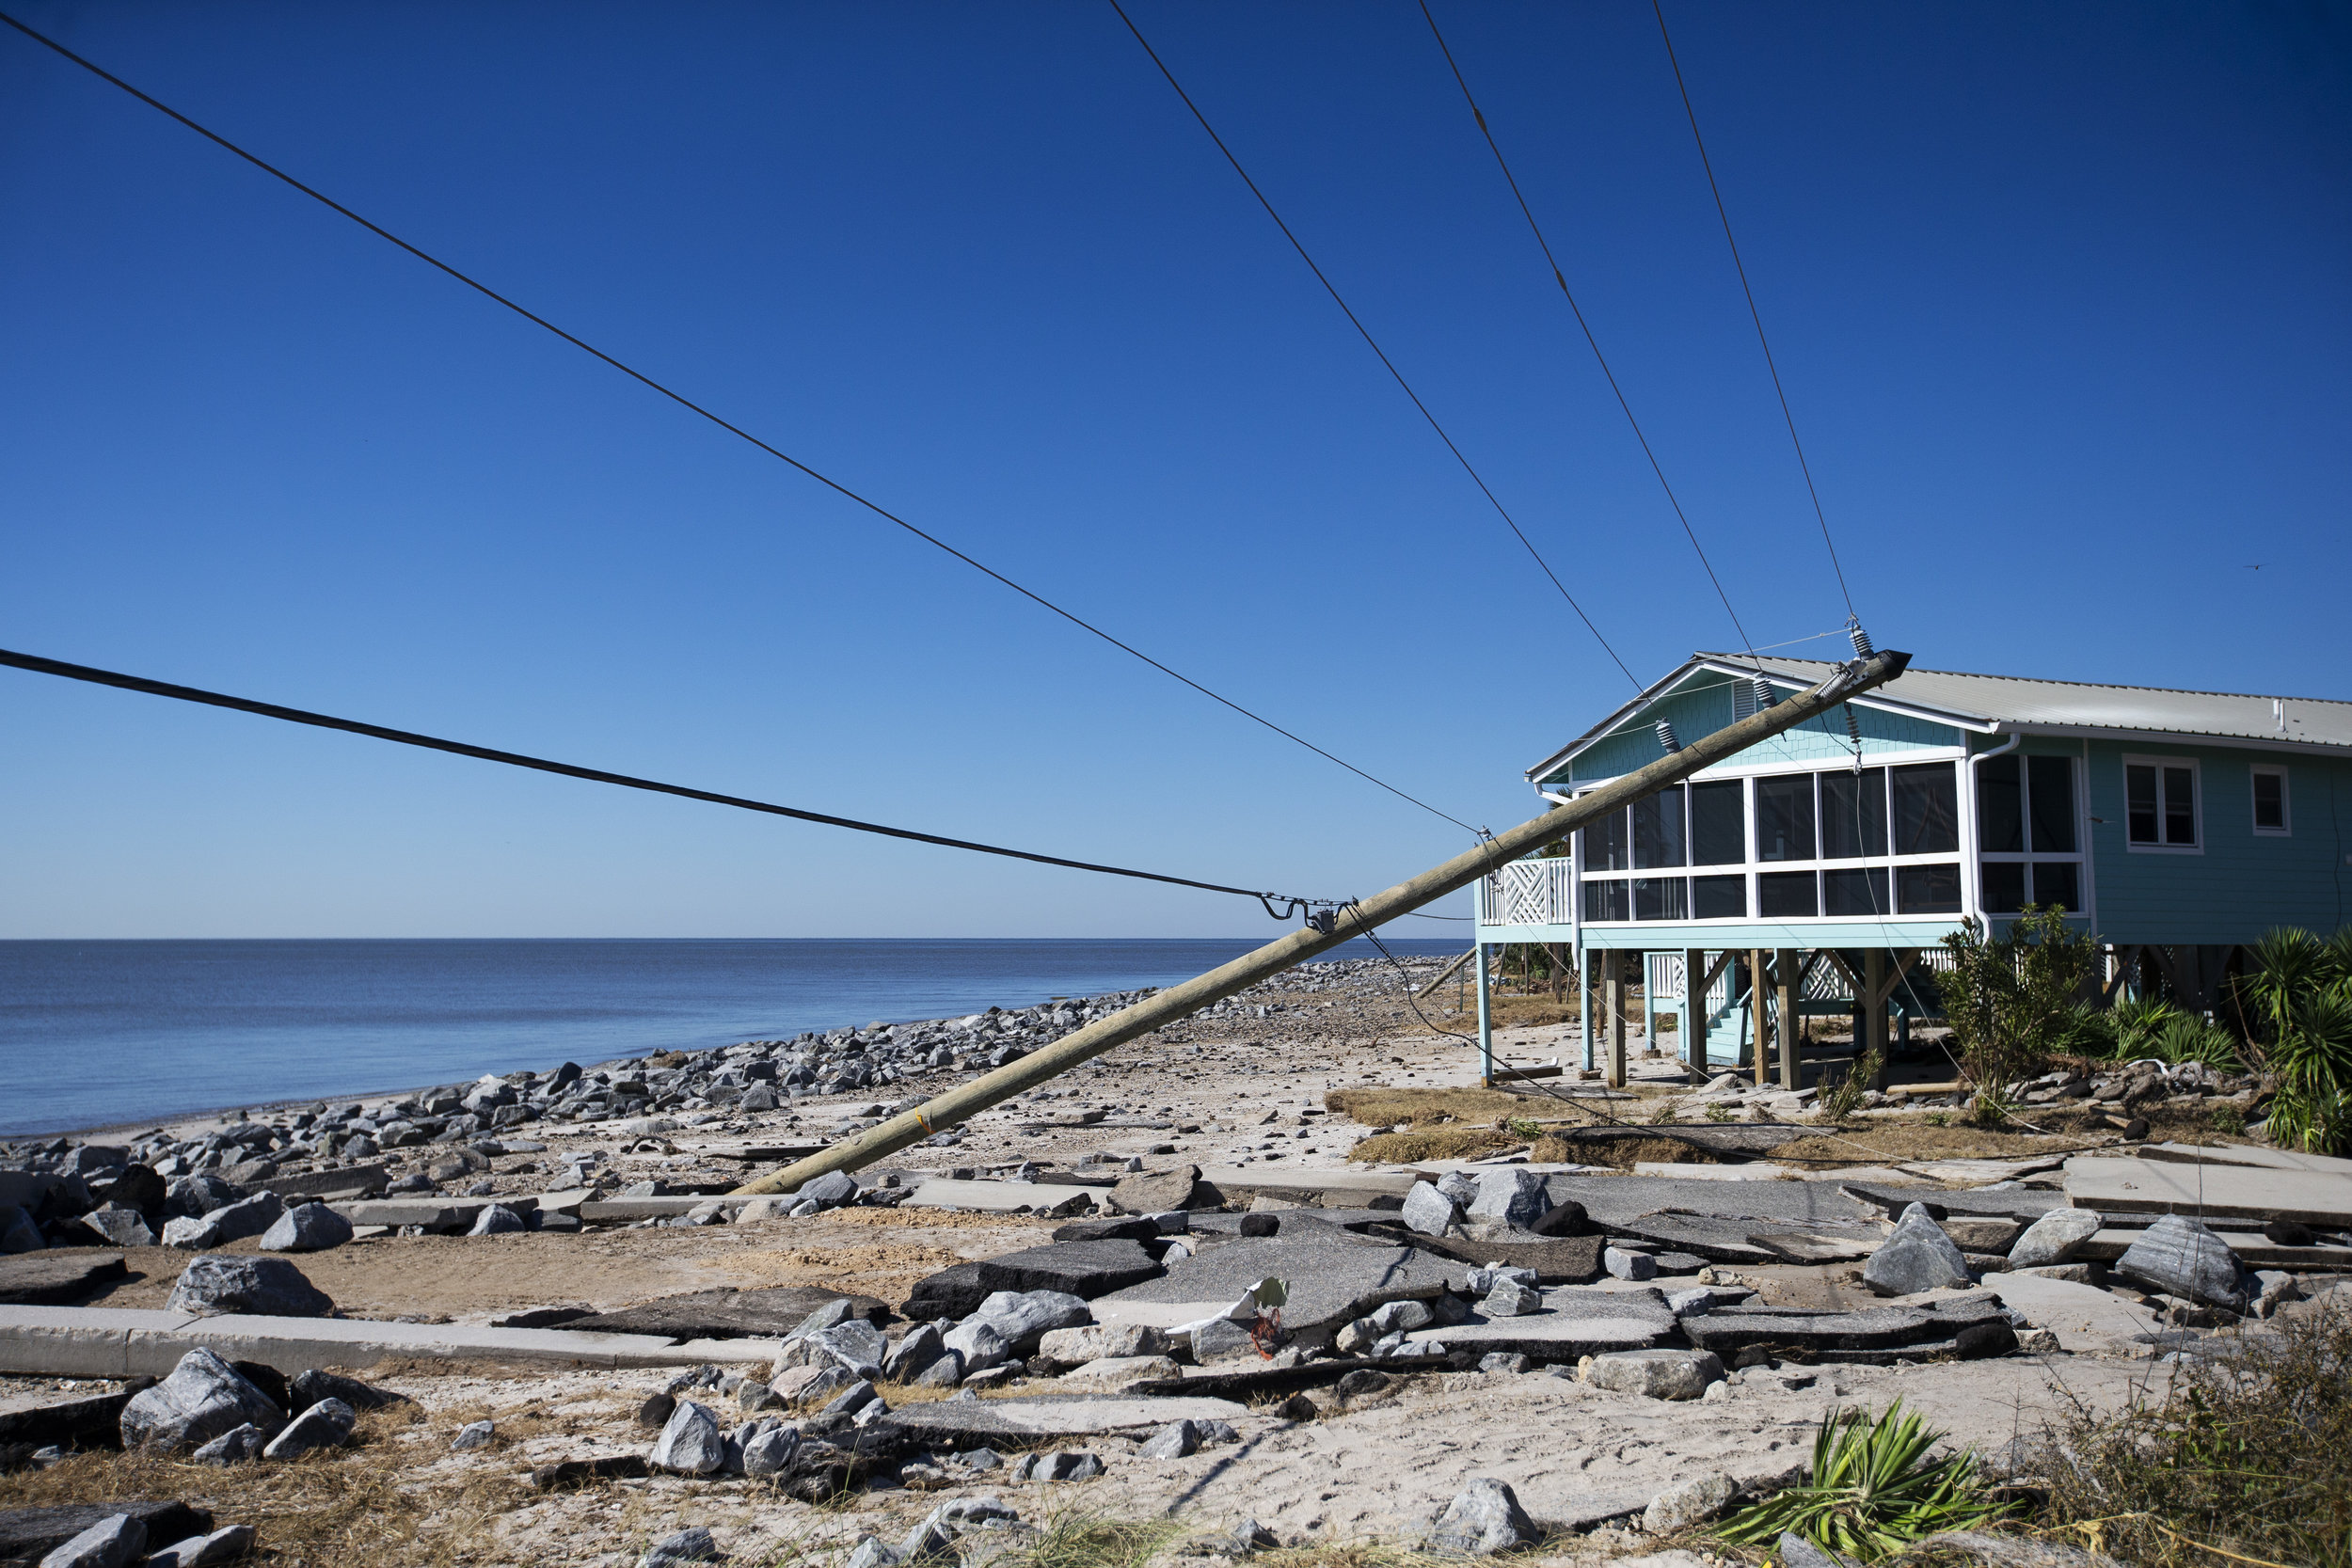 Downed powerlines lean into homes on Alligator Drive in Alligator Point on October 12, 2018.